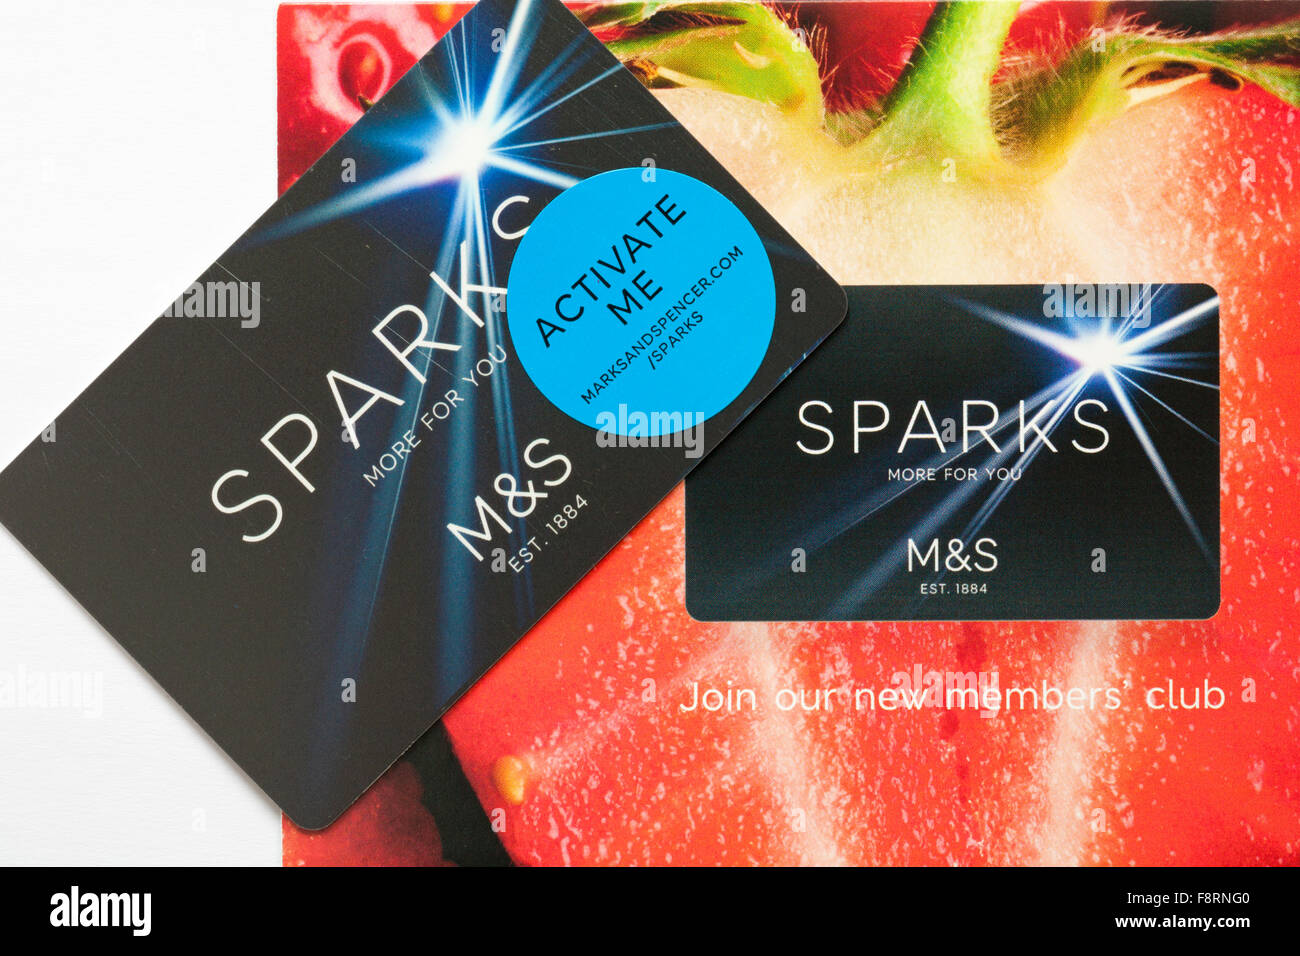 M&S Sparks card more for you - join our members club - Stock Image